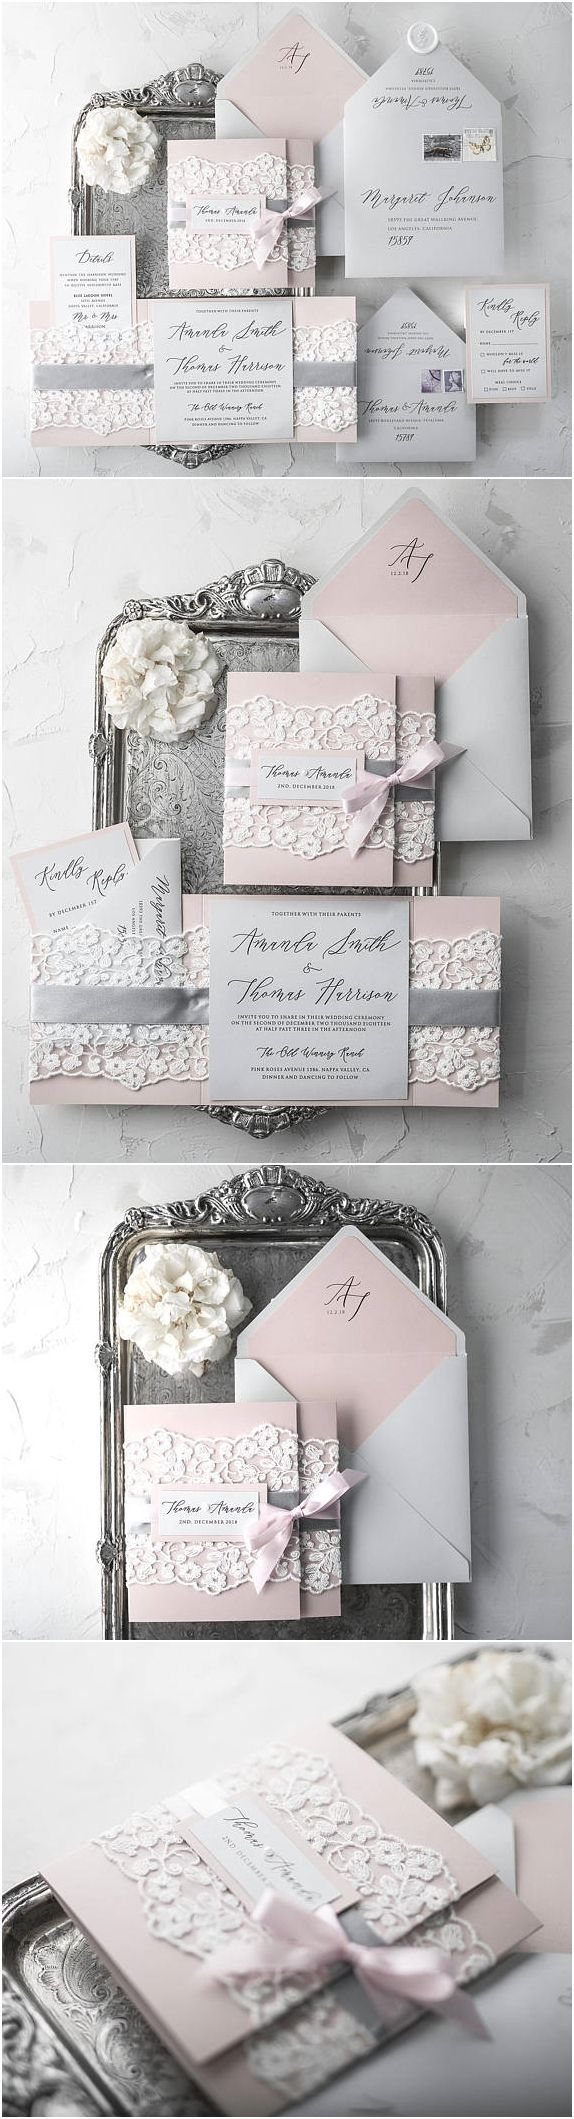 hindi poem for marriage invitation%0A Rustic Wedding Invitation Suite       Wedding Invitations Rustic  Lace Wedding  Invitations